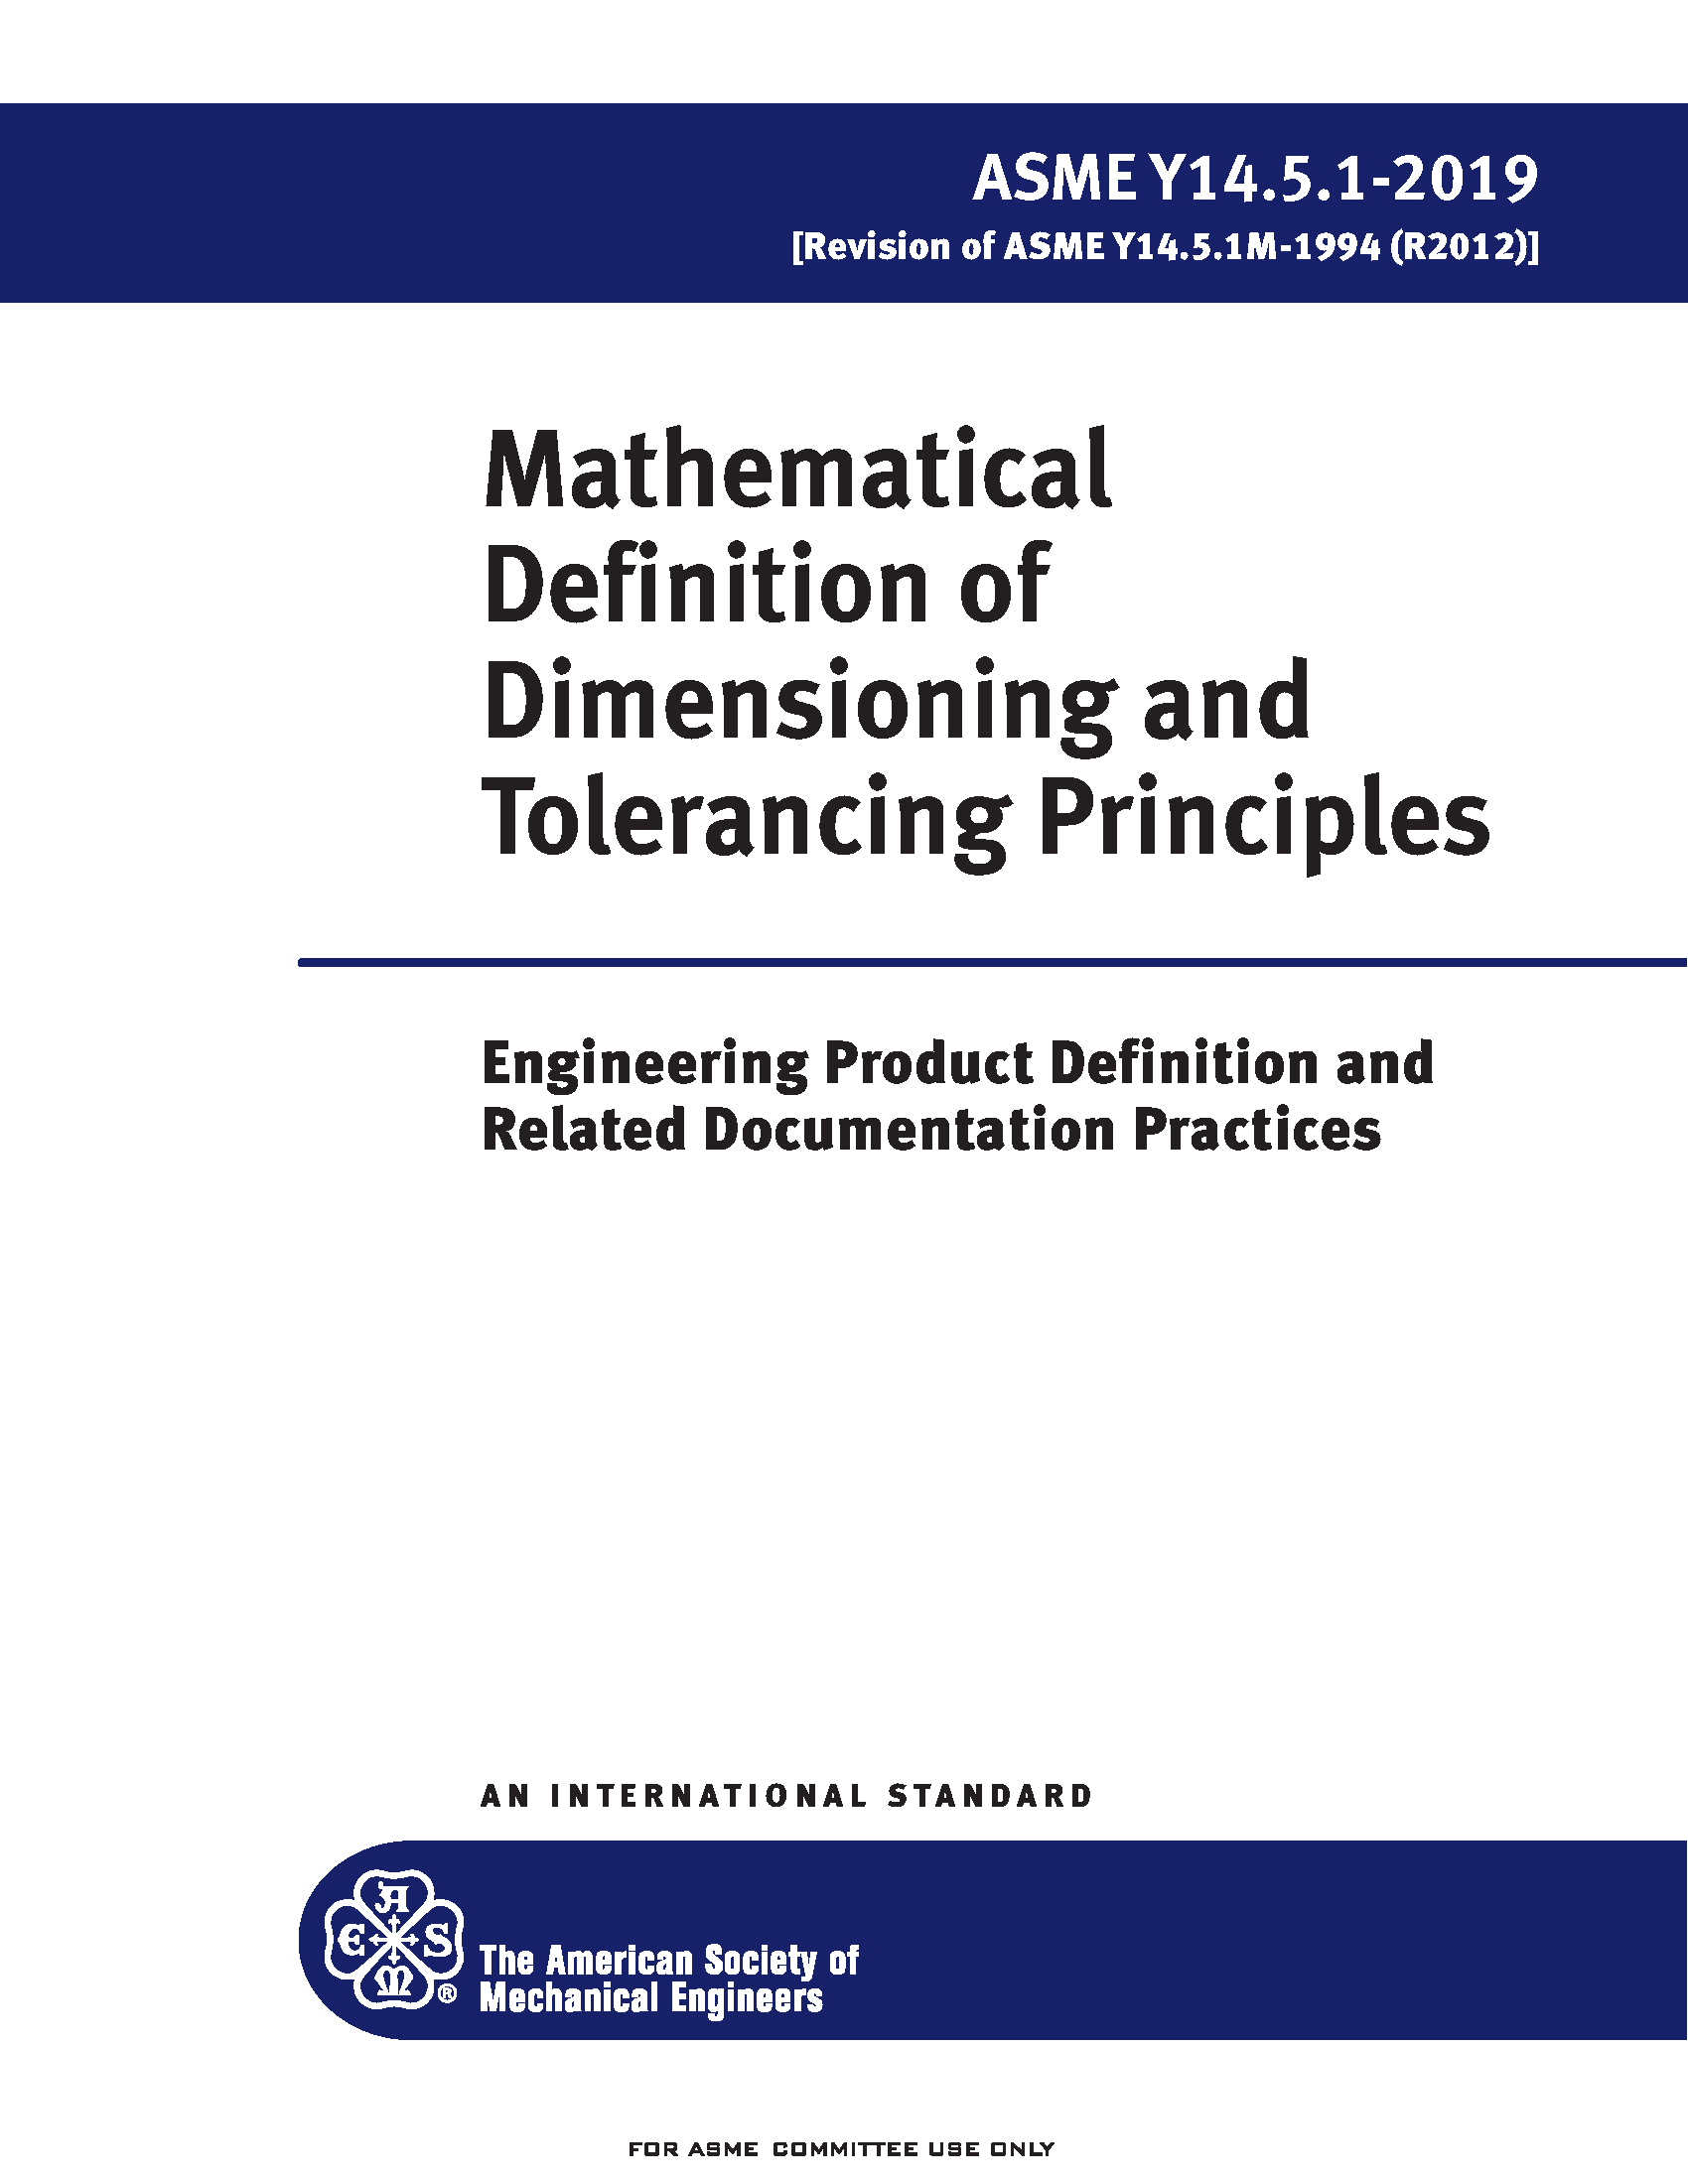 ASME Y14.5.1 2019 Mathematical Definition of Dimensioning and Tolerancing Principles Standard